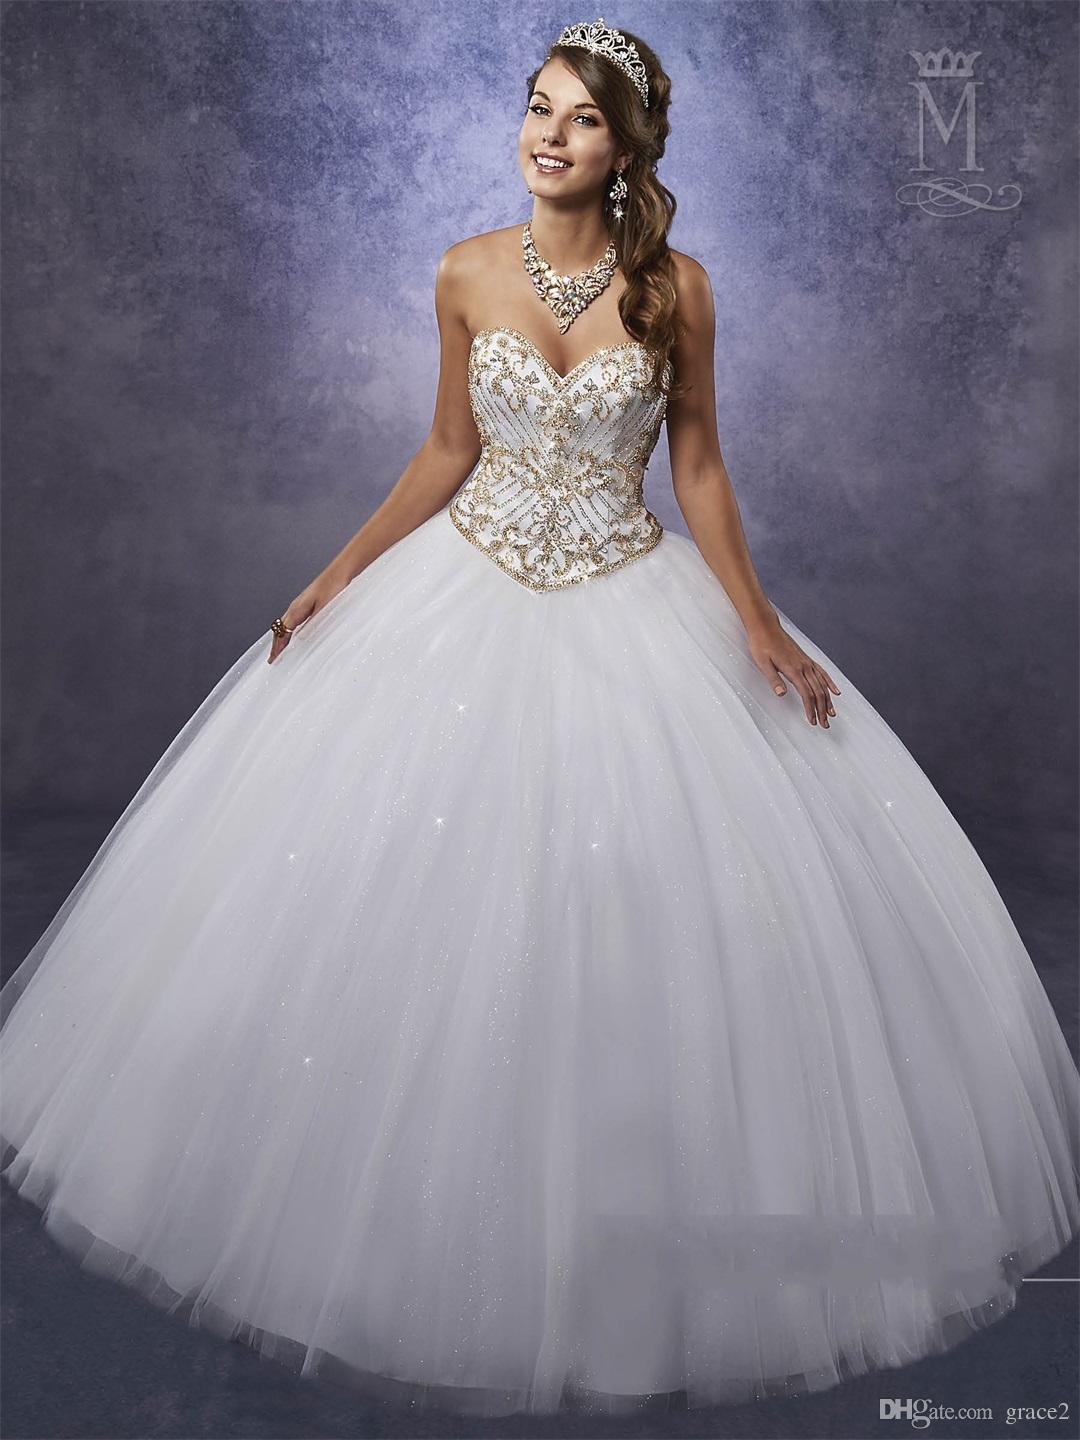 White Ball Gown Quinceanera Dresses with Gold Beads Embellishments Free Bolero Beading Tulle Beautiful Sweet 15 16 Dress